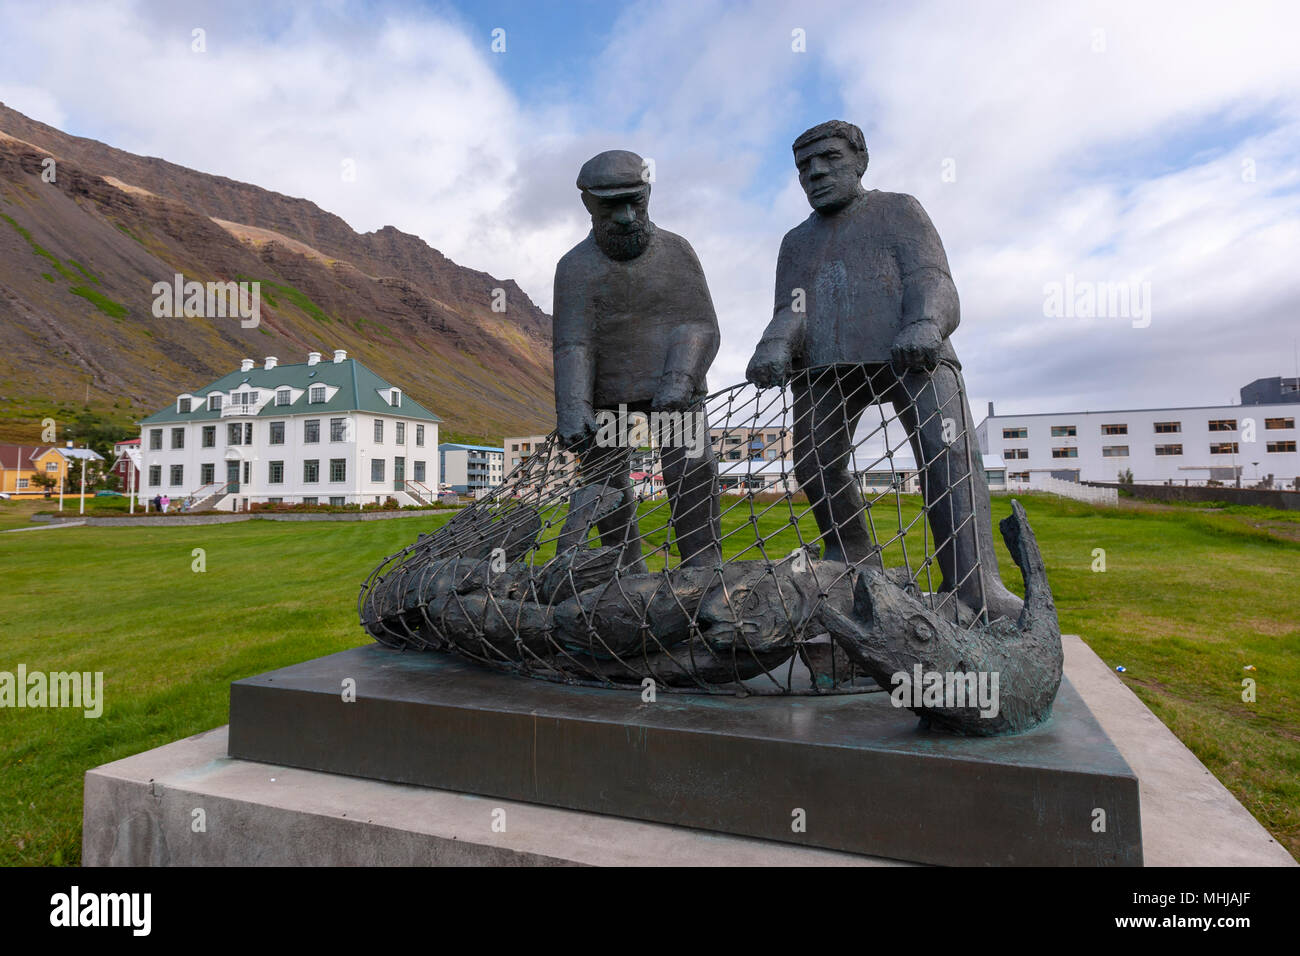 Two fishermen monument sculpture, by the sculptor Ragnar Kjartansson , in Isafjordhur town in the northwest of Iceland. - Stock Image